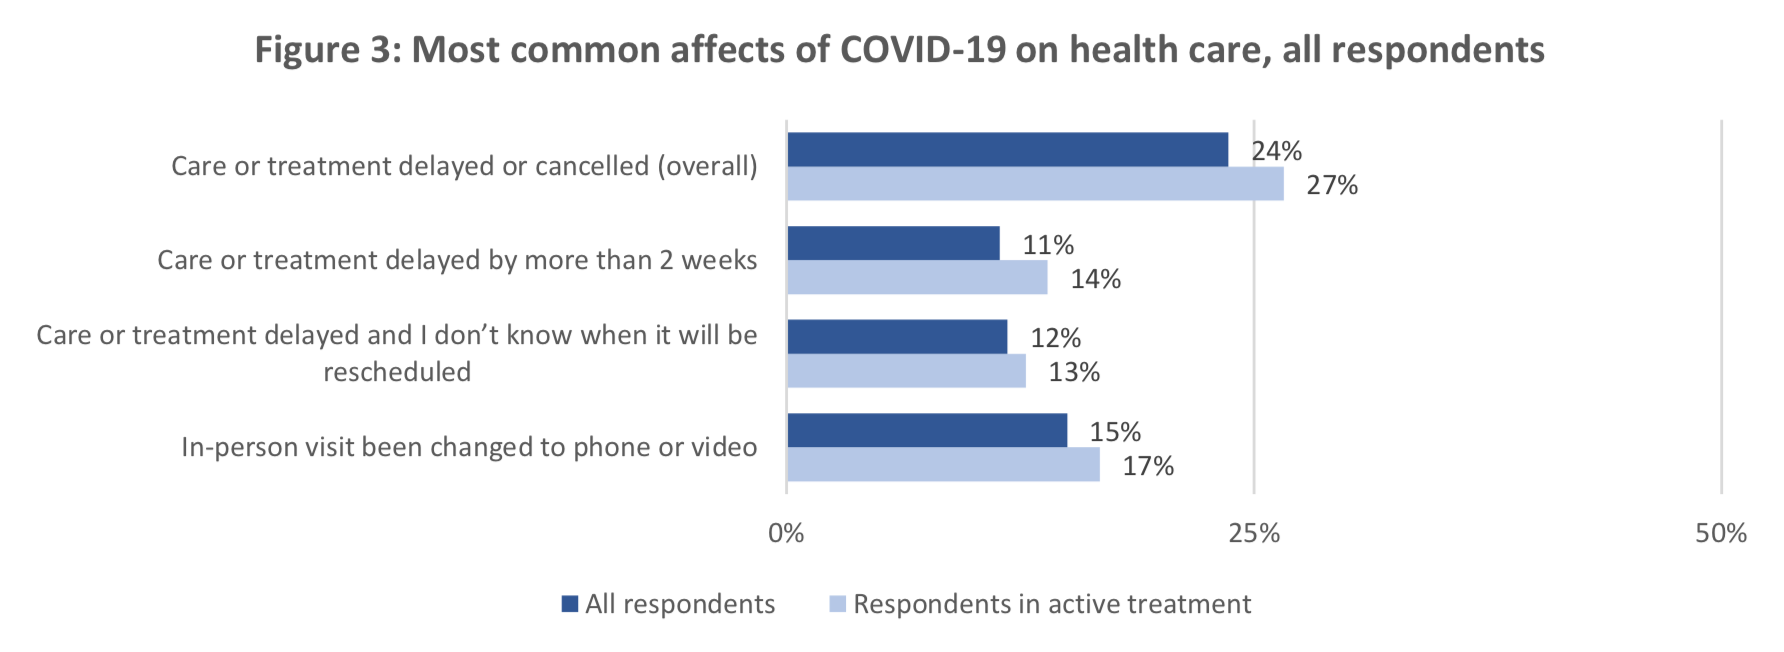 Figure 3: Most common affects of COVID-19 on health care, all respondents